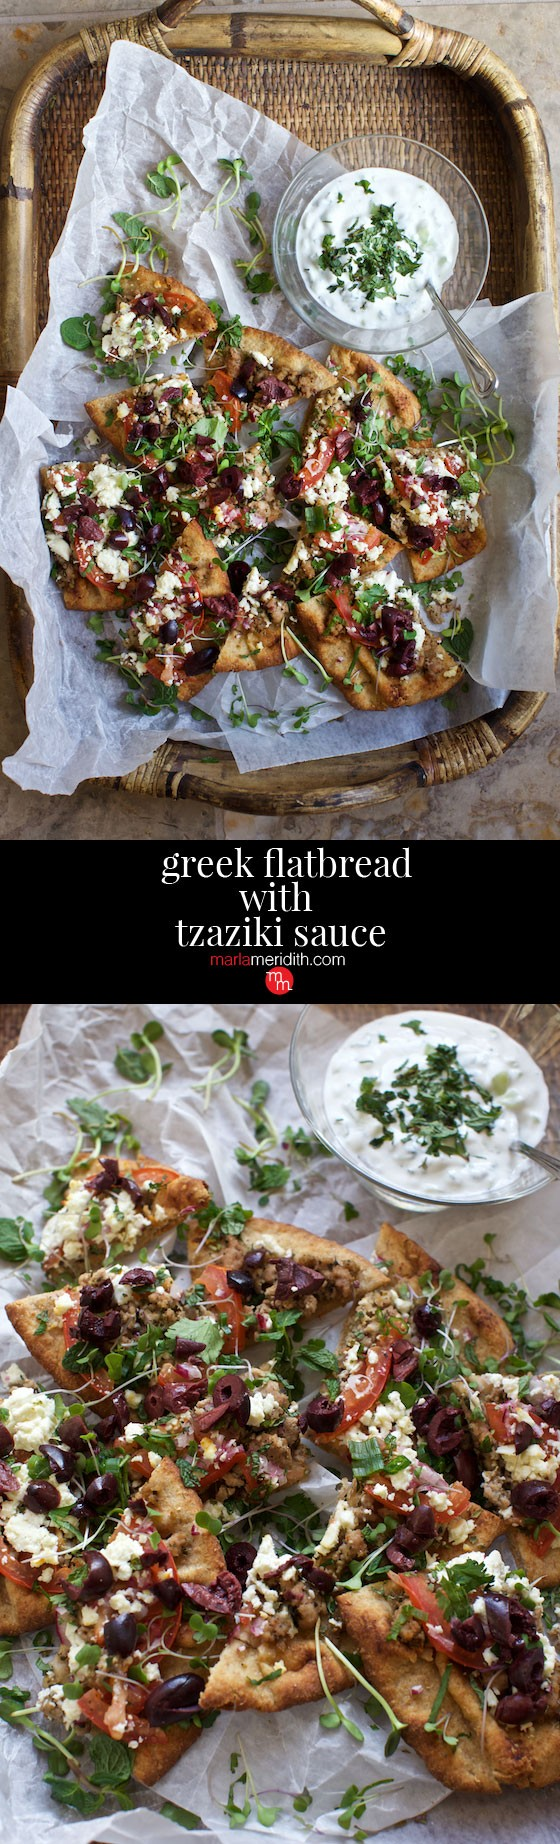 Greek Flatbread with Tzaziki Sauce recipe. A crowd pleaser for game day, family meals and entertaining. MarlaMeridith.com ( @marlameridith )